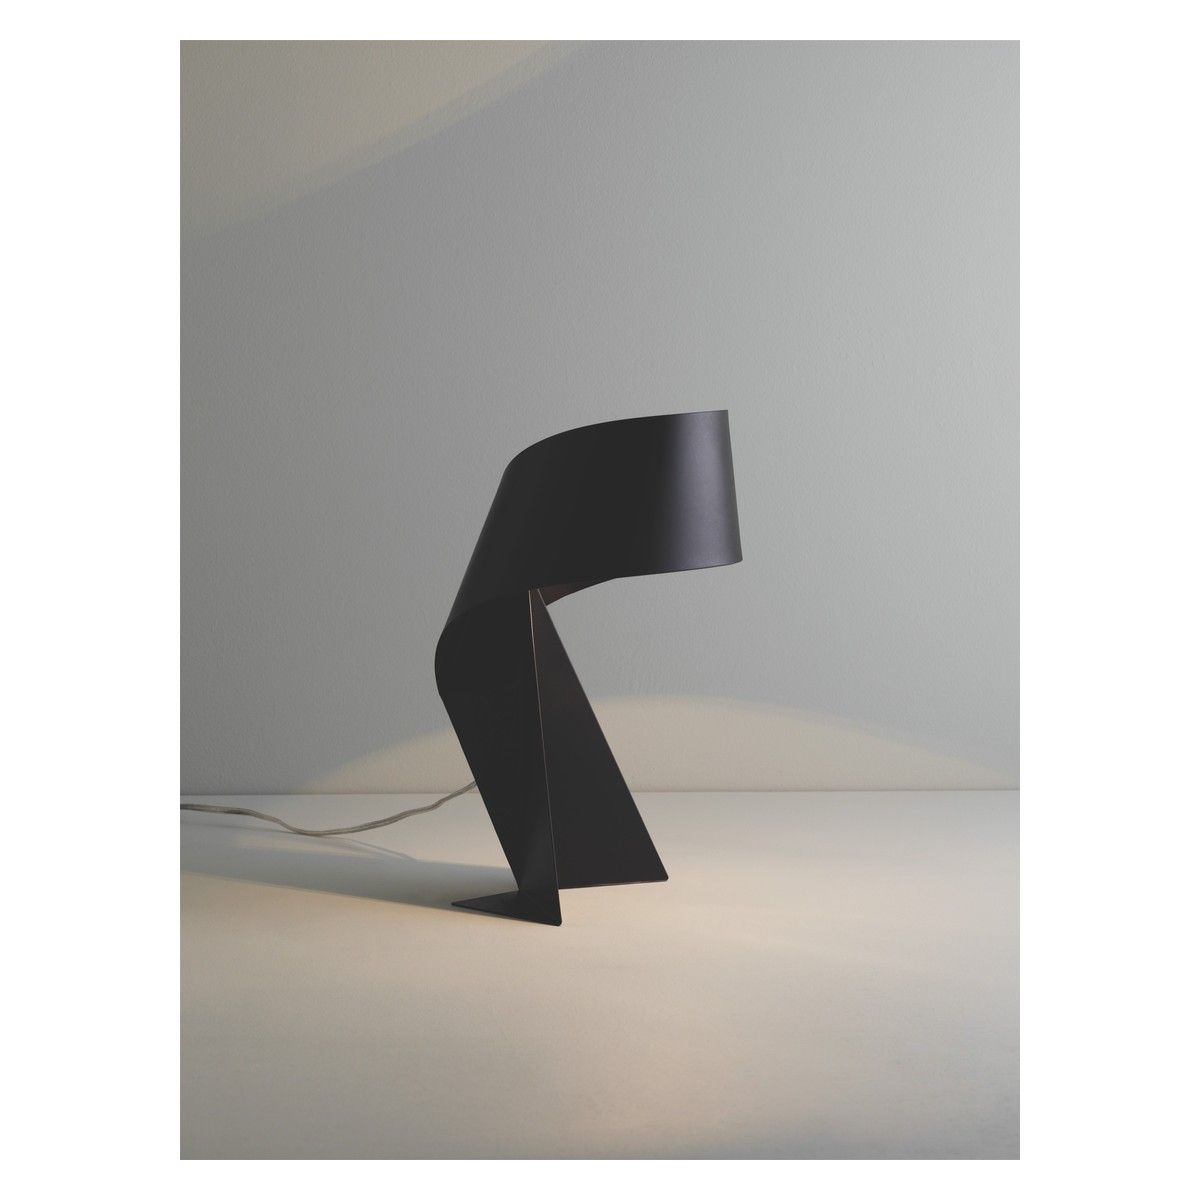 Ribbon black small metal table lamp buy now at habitat uk ribbon black small metal table lamp buy now at habitat uk mozeypictures Gallery